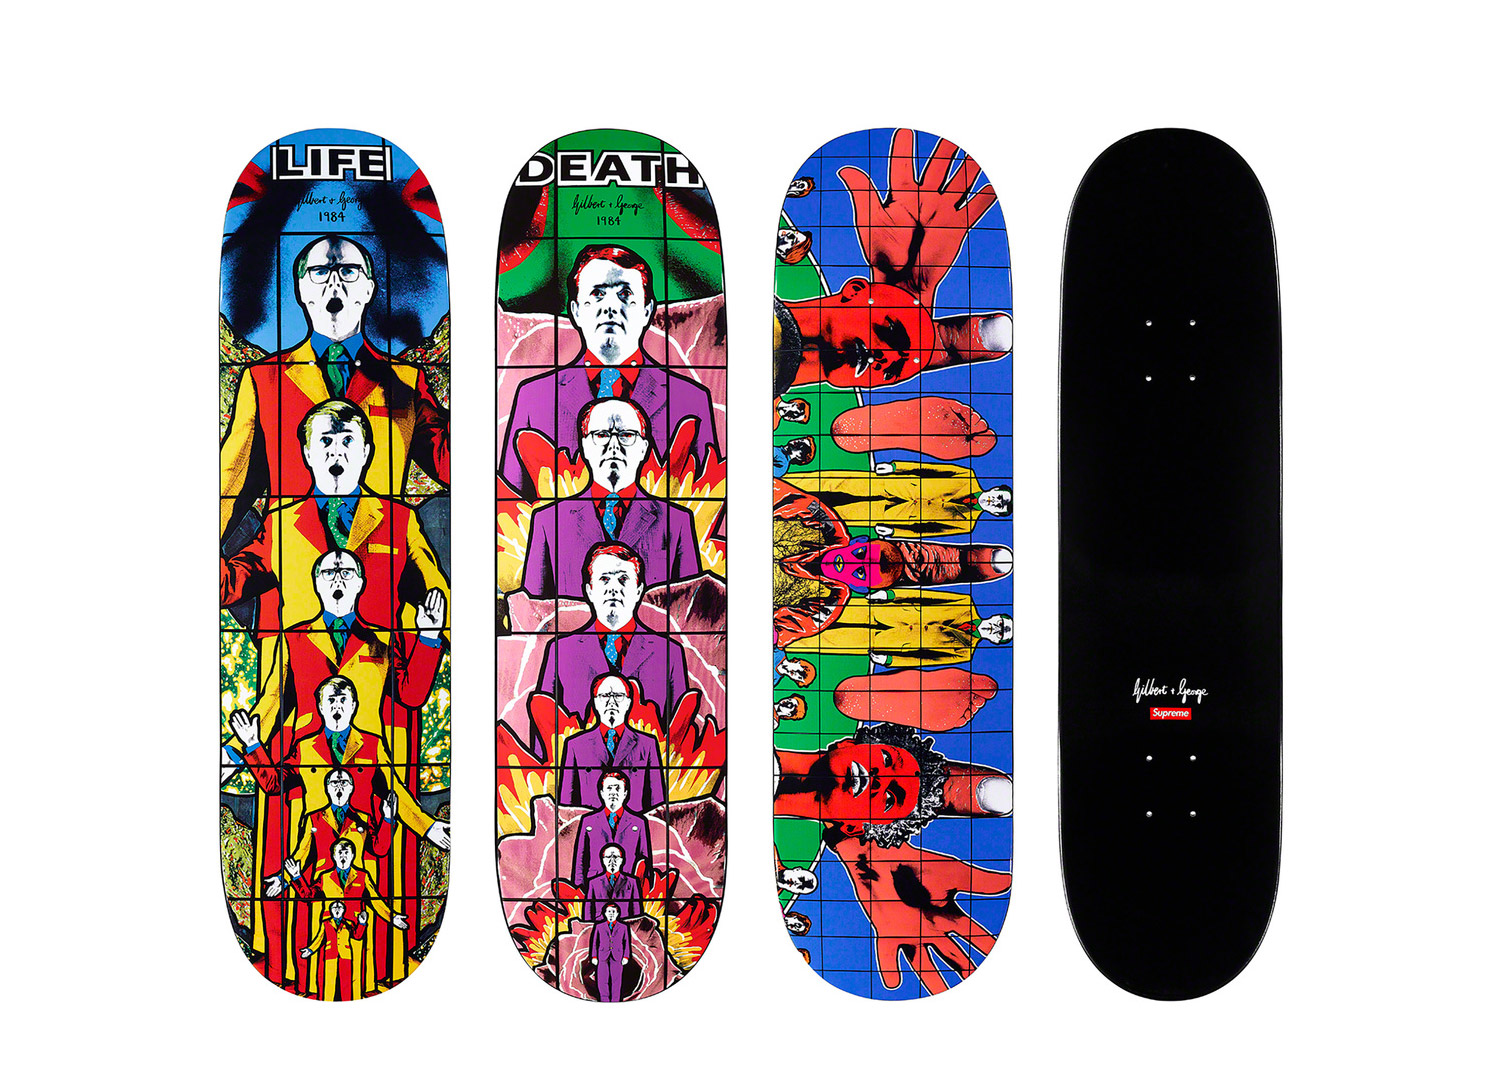 Gilbert & George - LIFE, DEATH and DEATH AFTER LIFE Skateboards